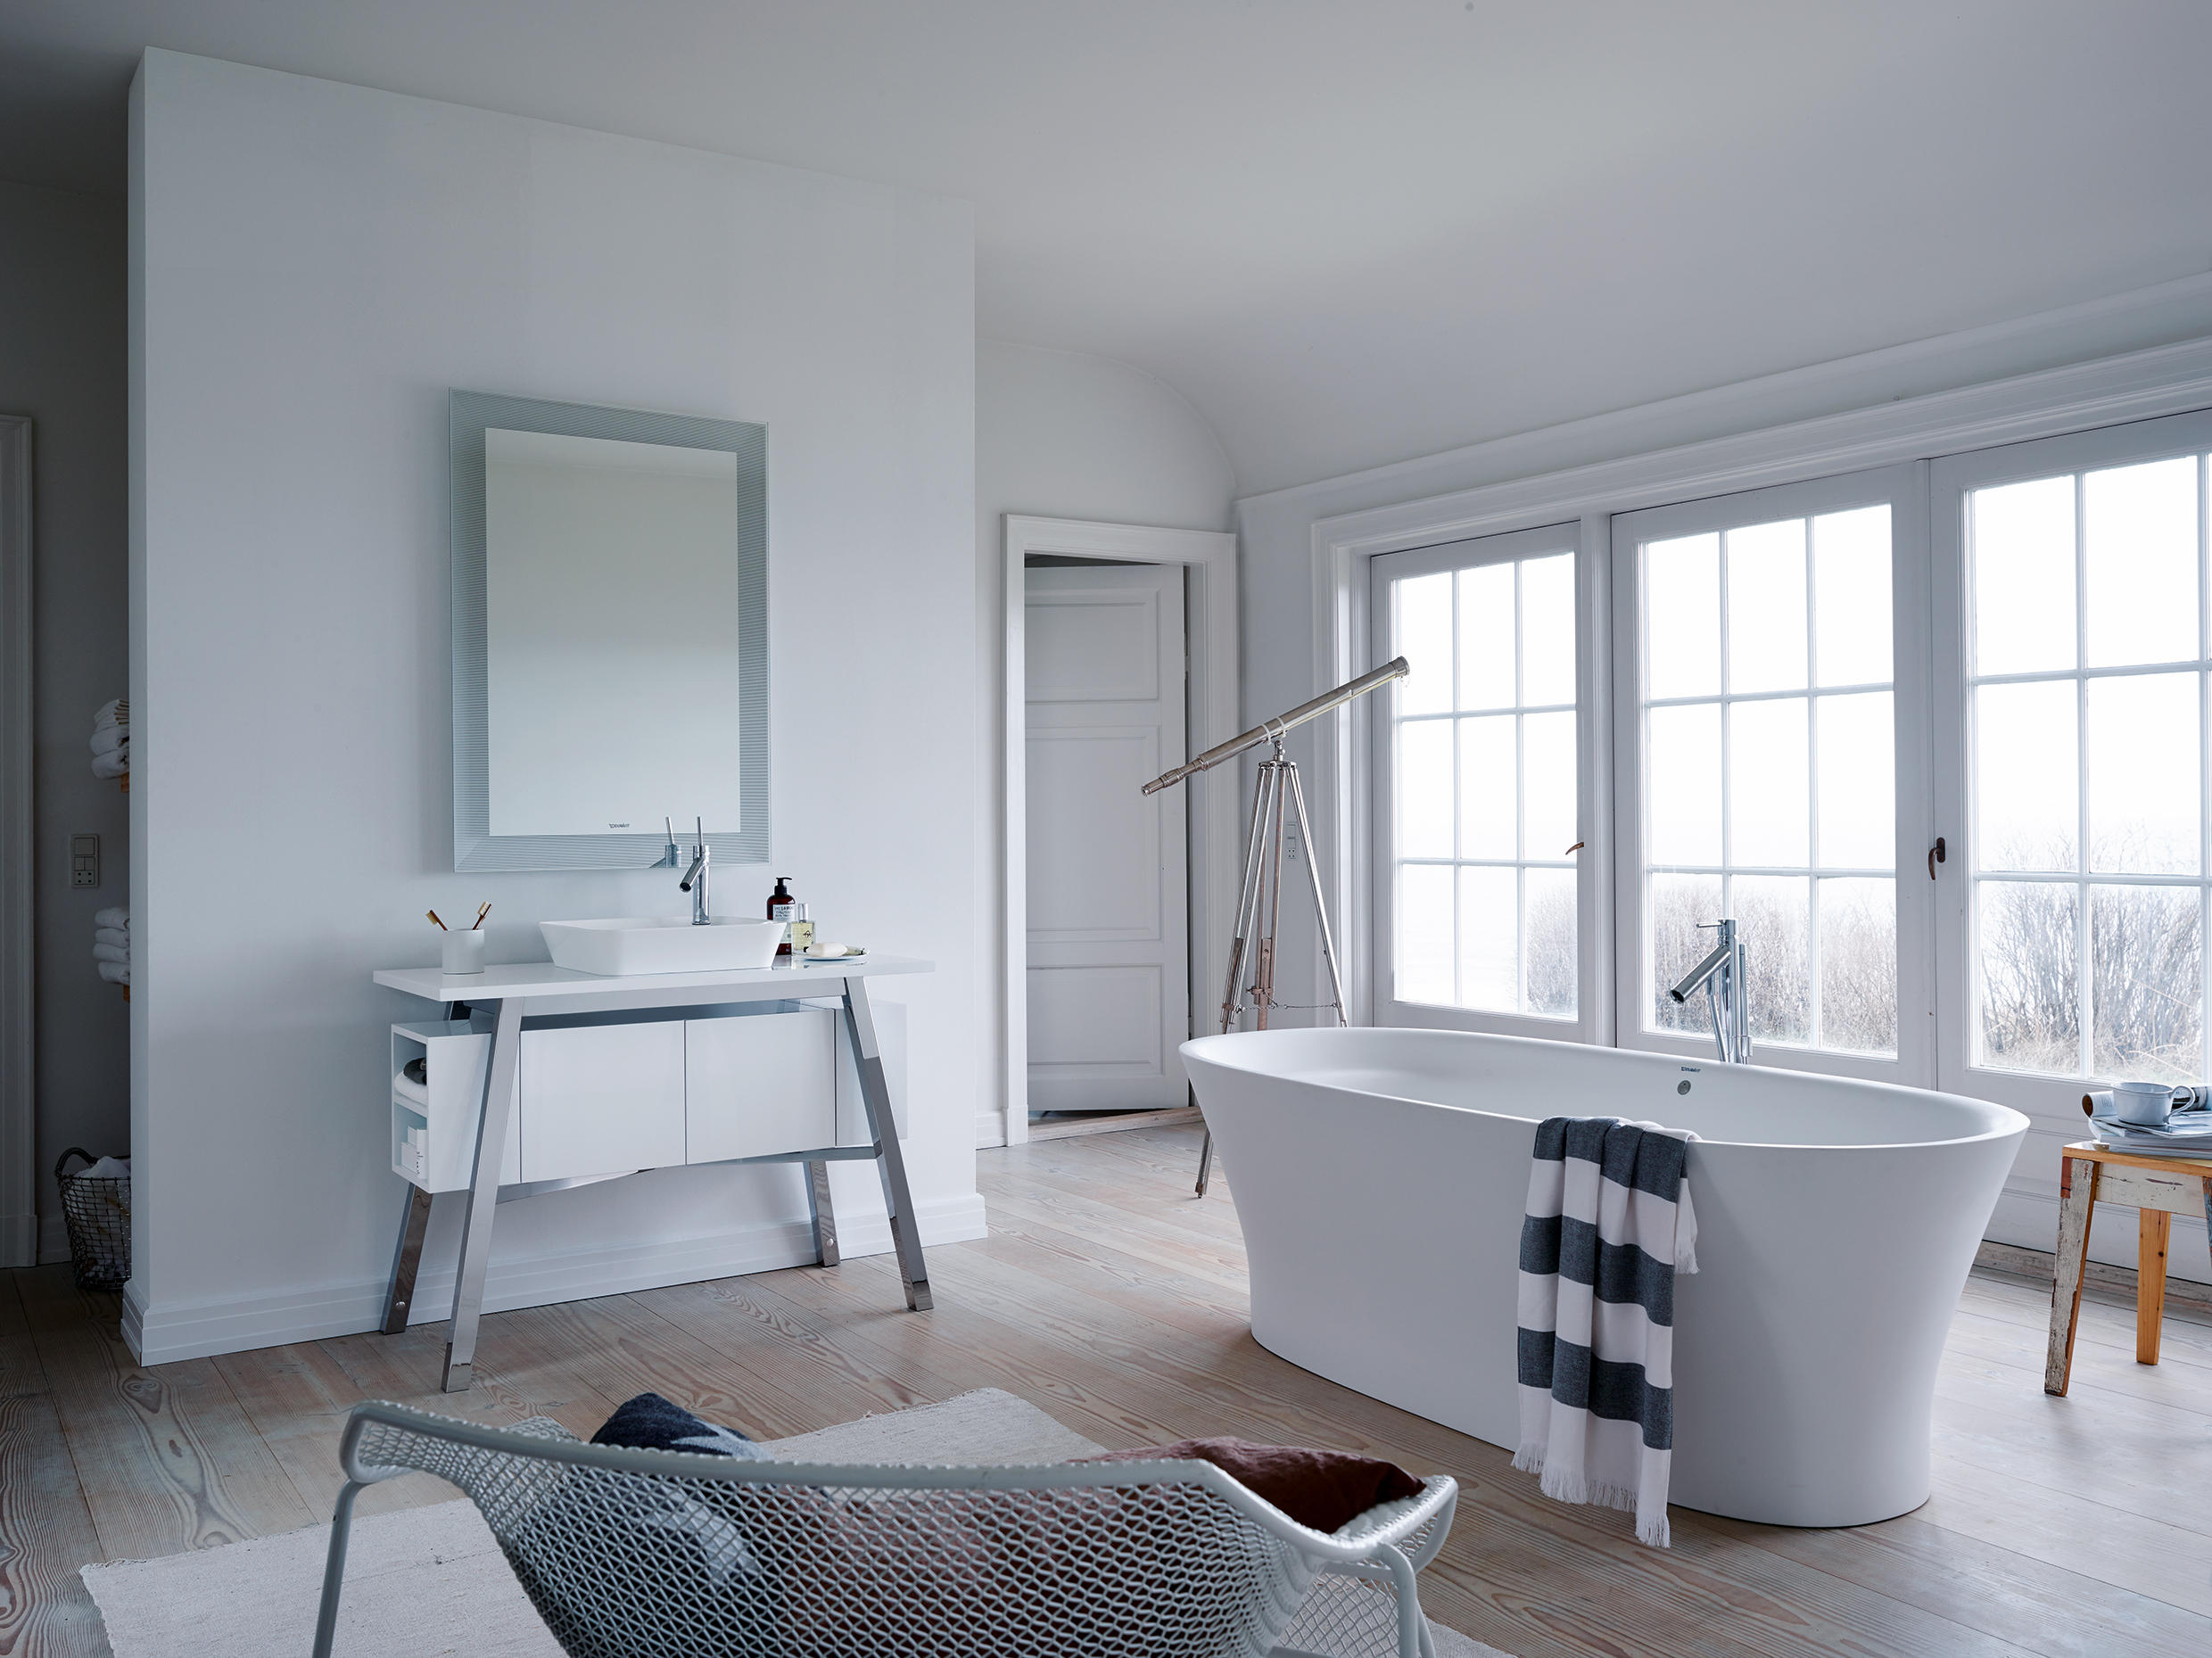 dcode bathroom tile bathtub tub ferreiras built in d bath product code duravit exclusive lifestyle